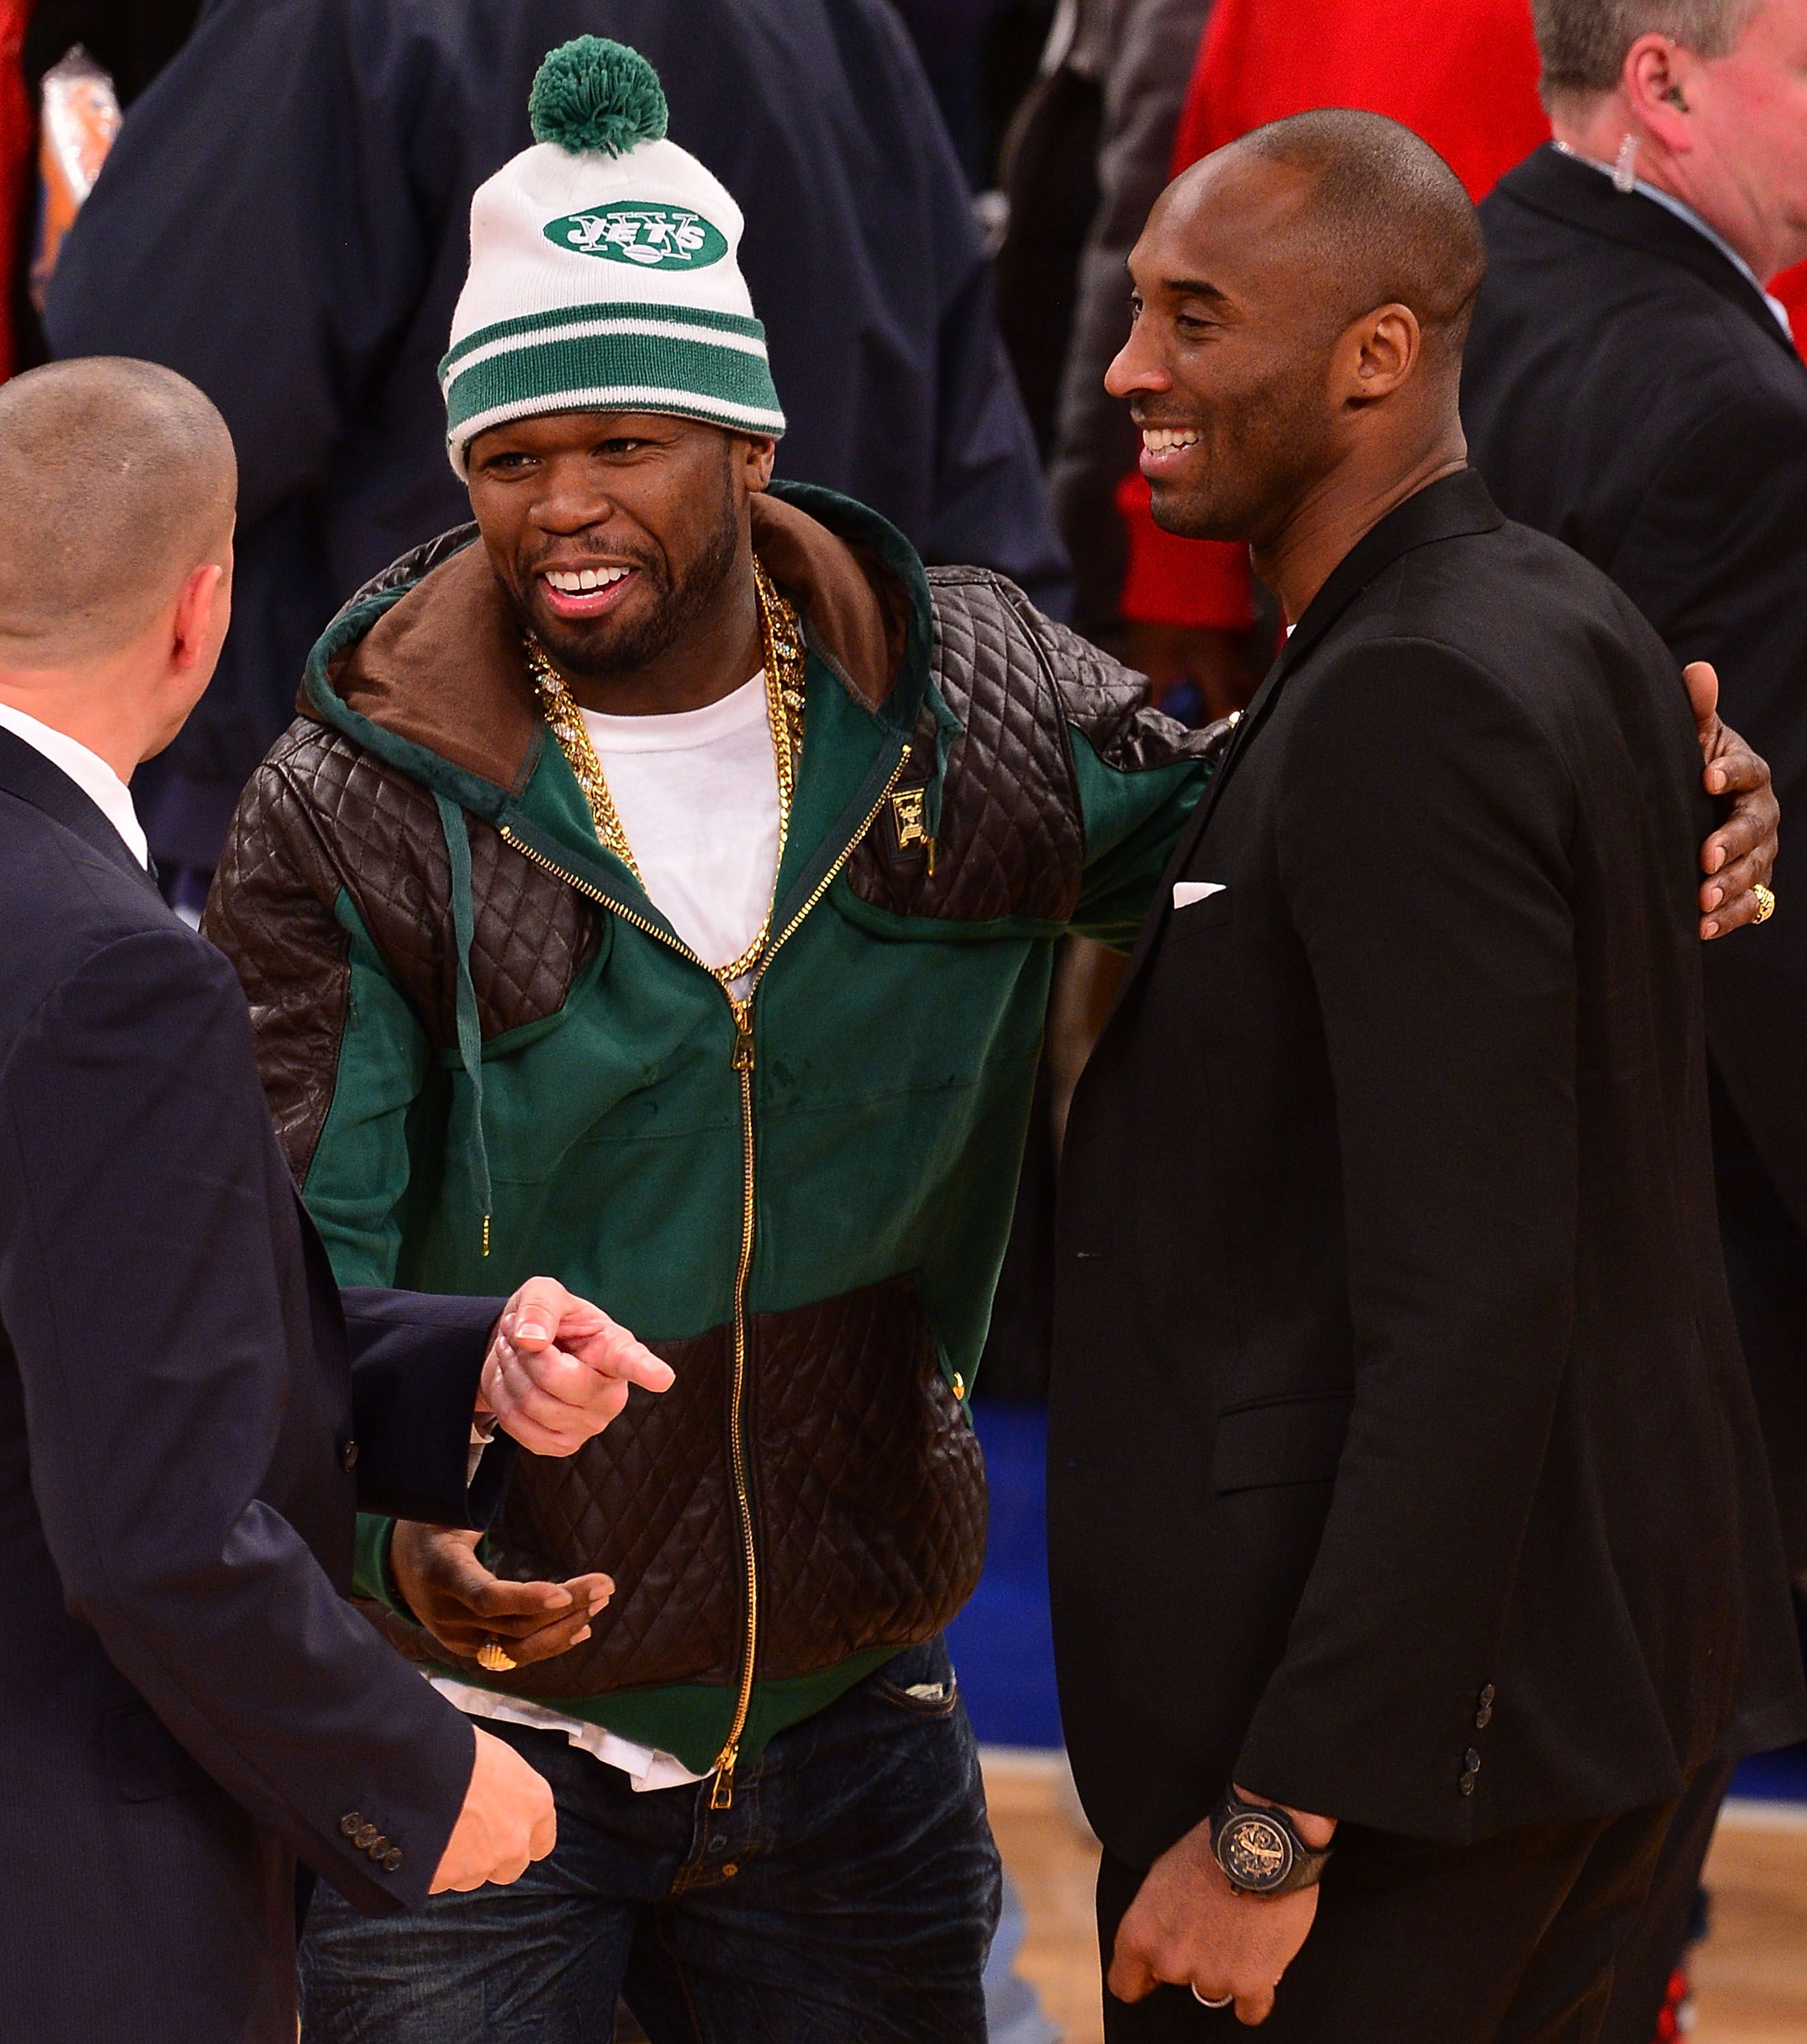 50 Cent and Kobe Bryant unite at an NBA game | Source: Getty Images/GlobalImagesUkraine